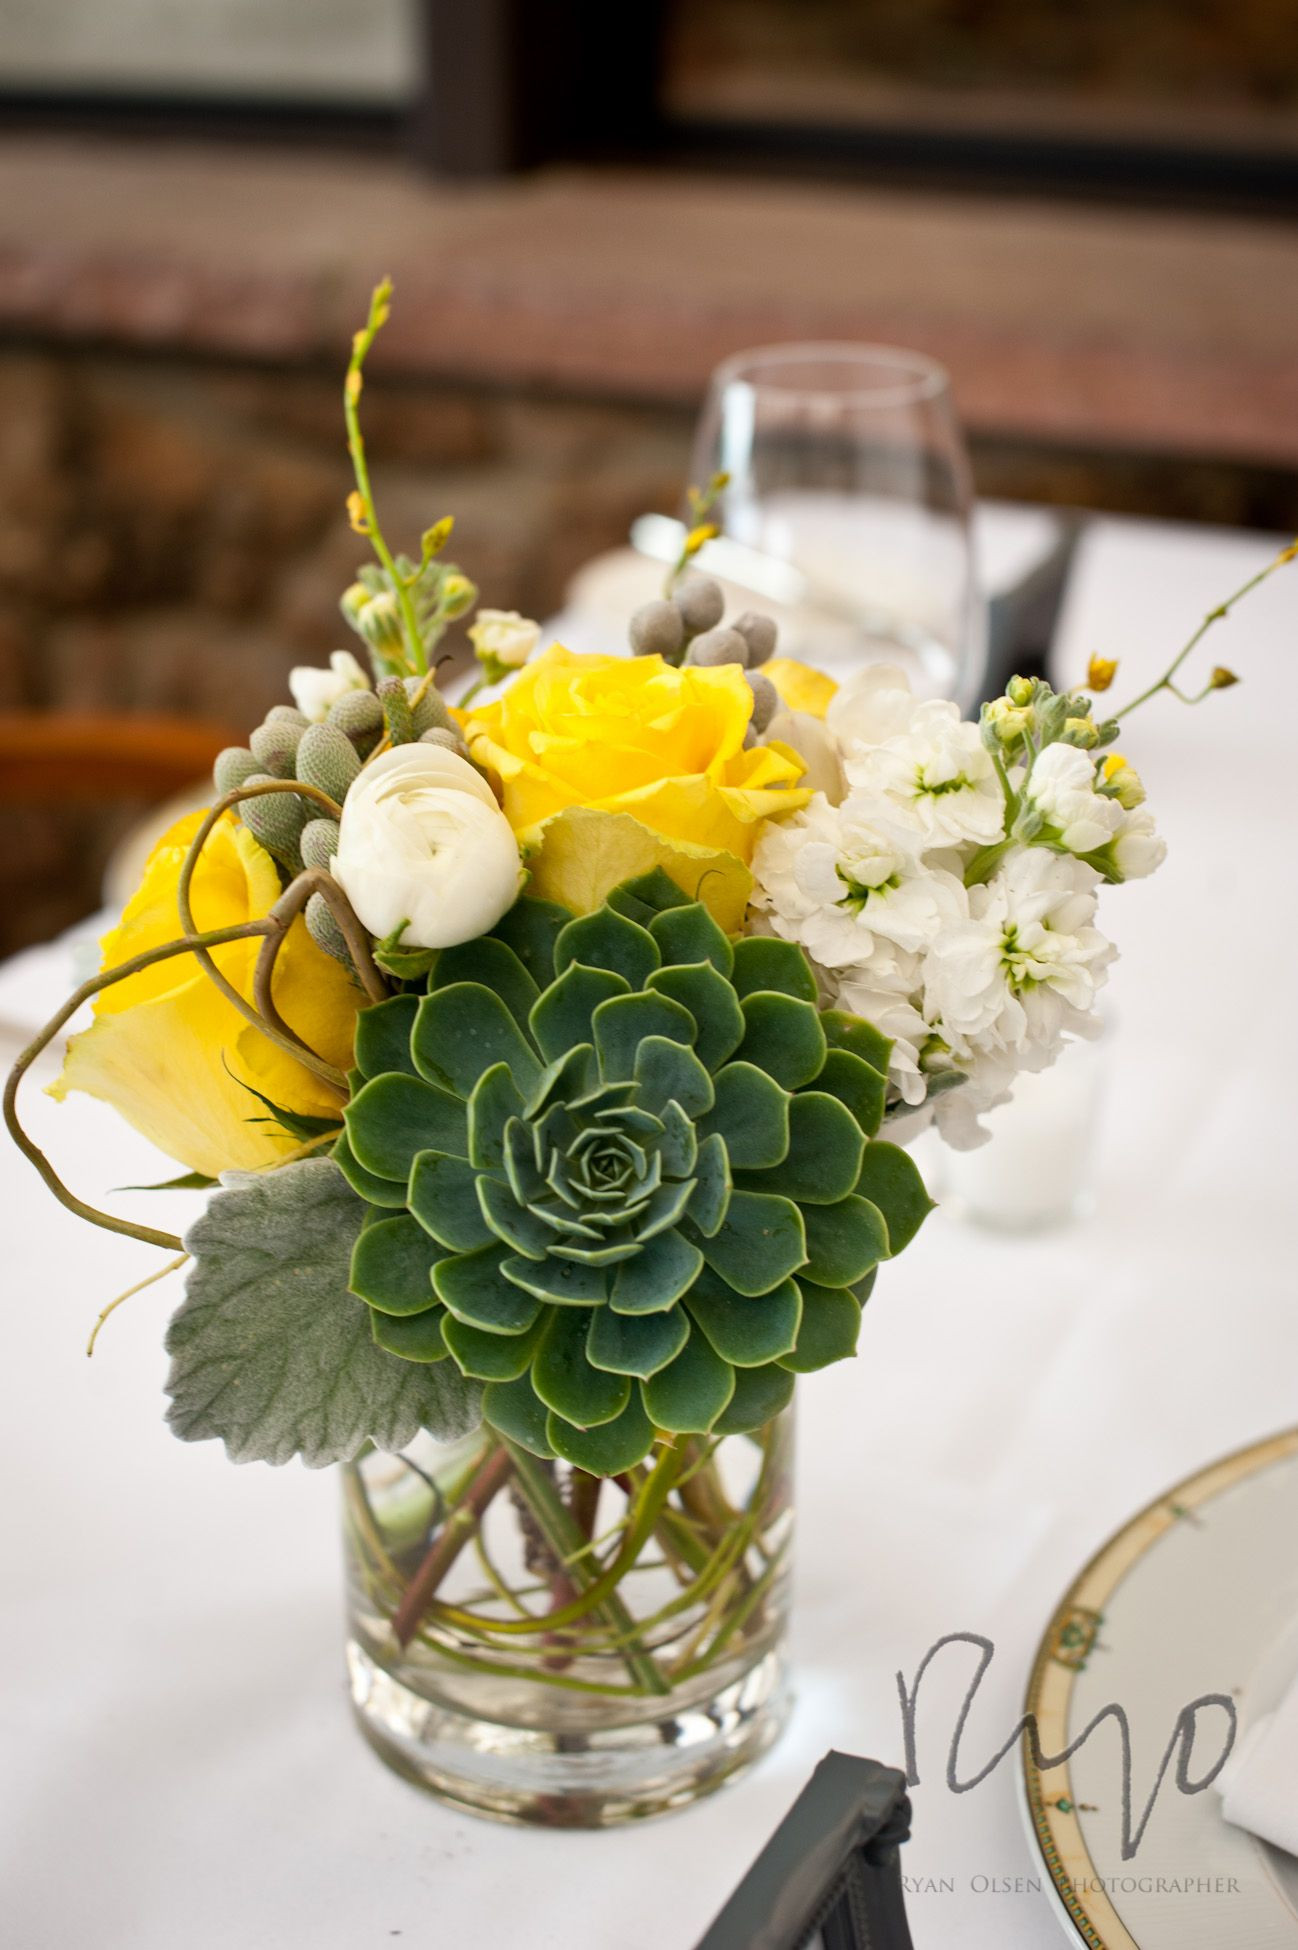 succulent reception wedding flowers wedding decor wedding flower centerpiece wedding flower arrangement add pic source on ment and we will update it